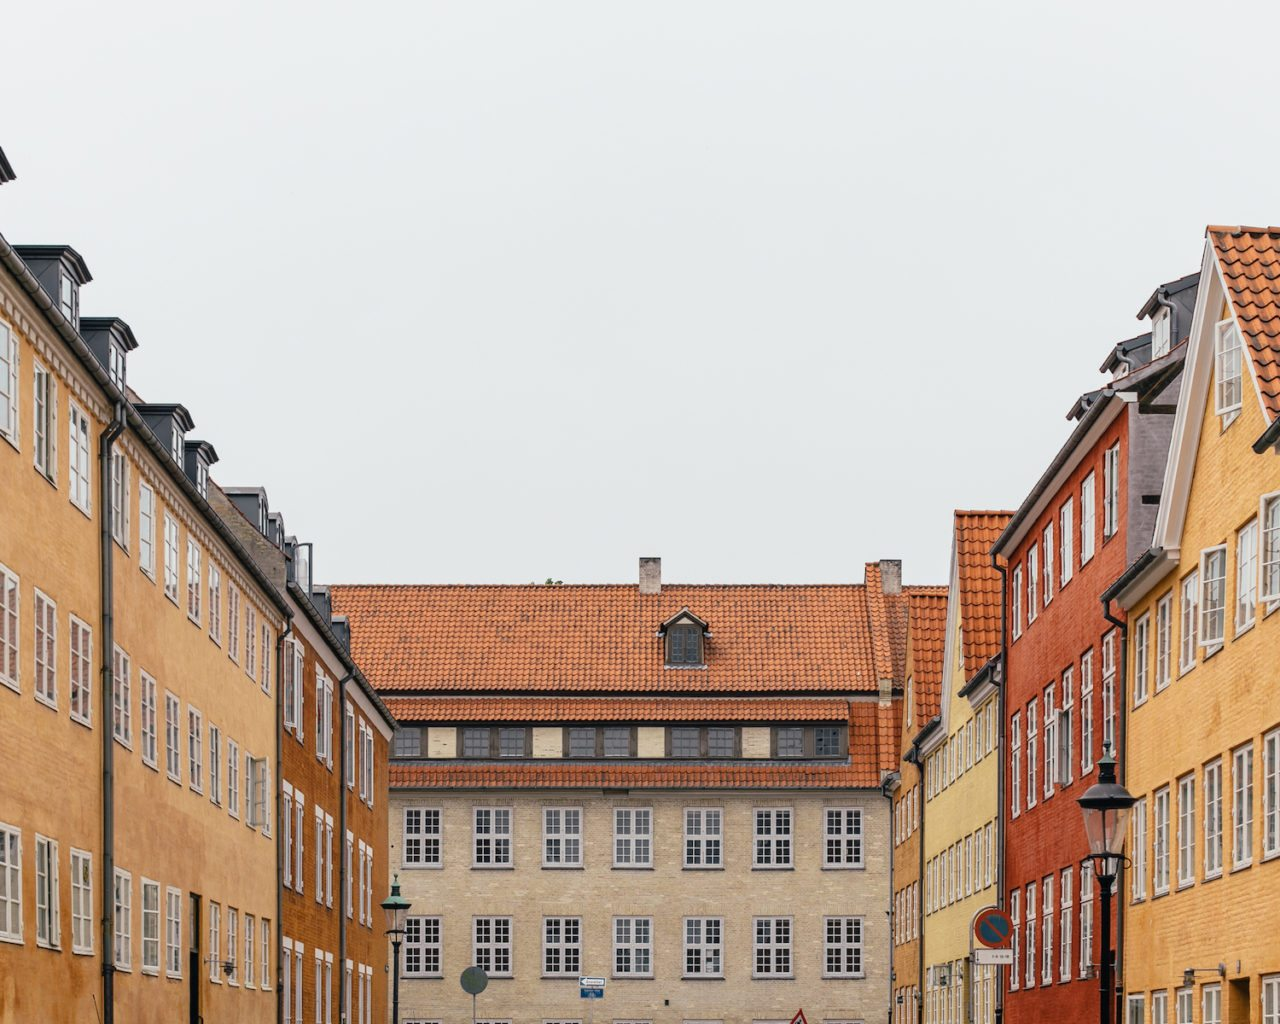 copenhagen buildings